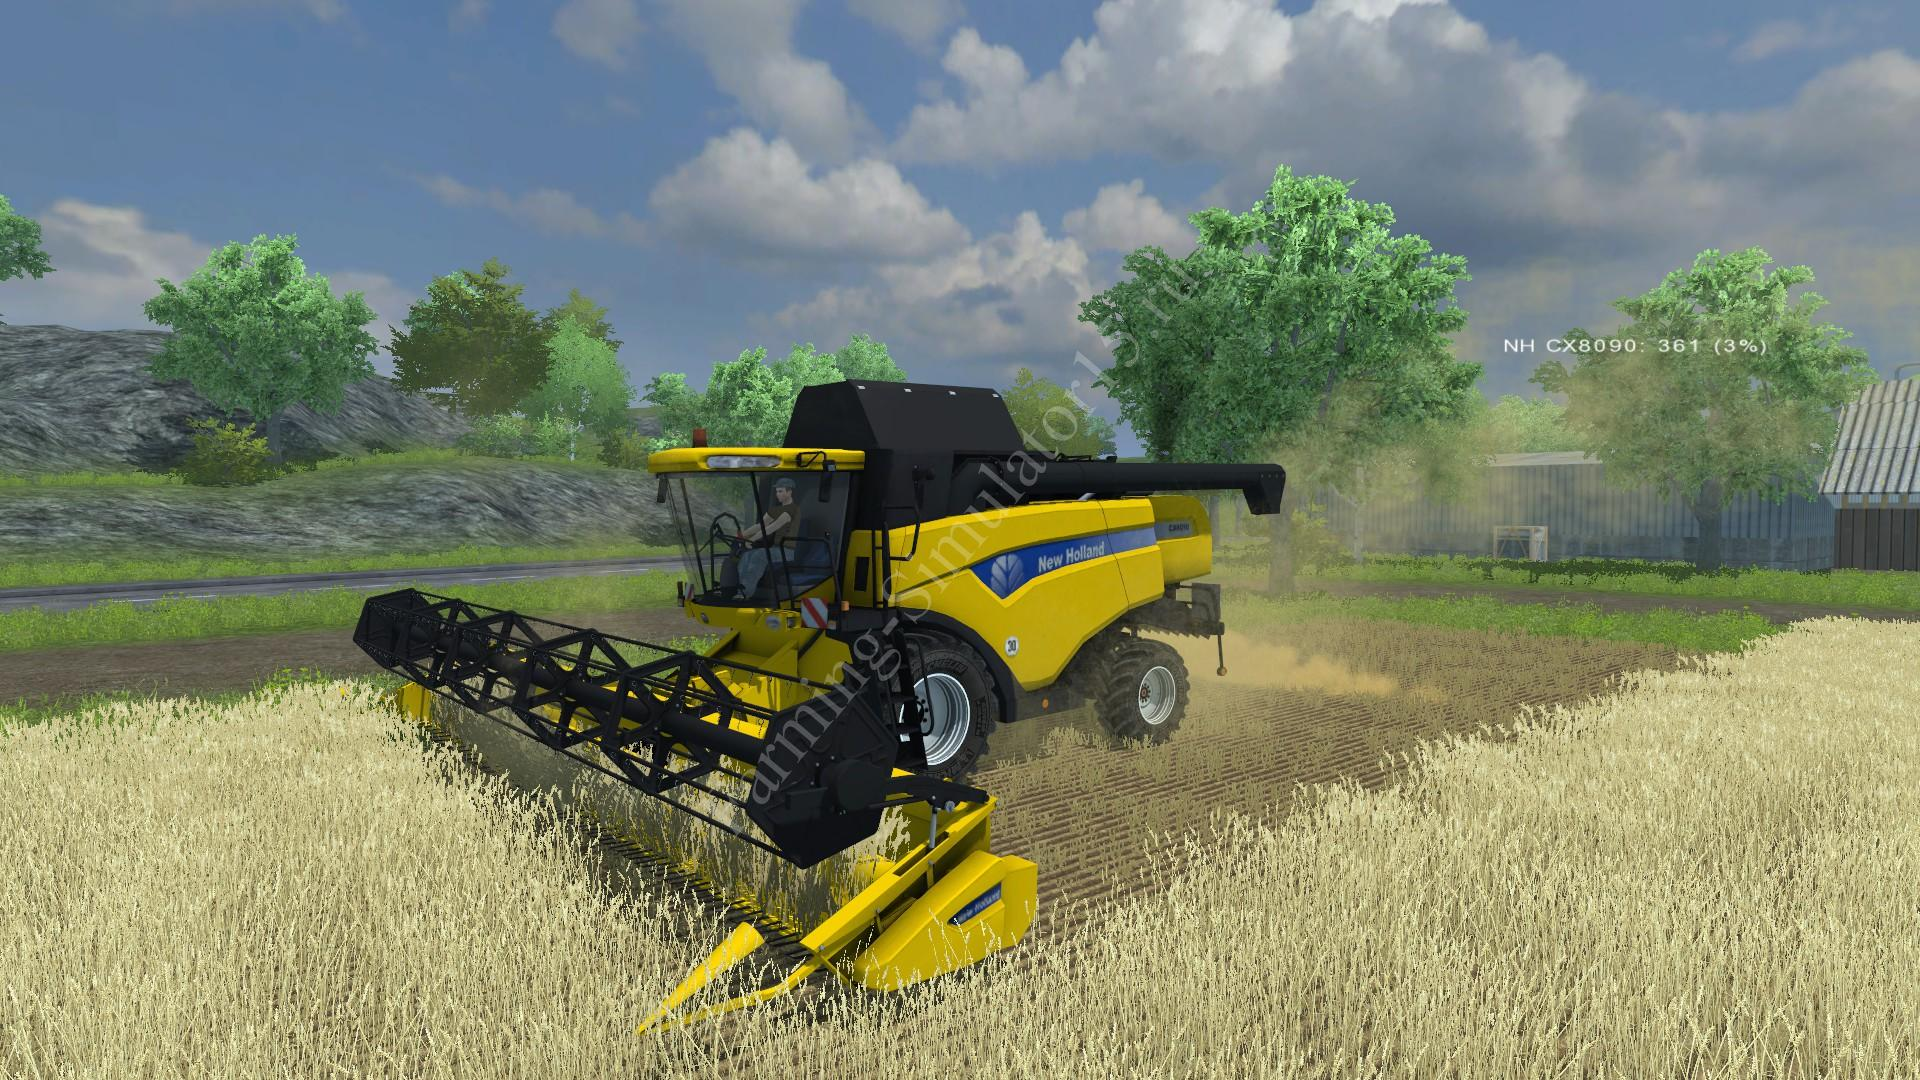 Мод комбайна New Holland CX 8090 v 2.0 Farming Simulator 2013, Farming Simulator 13